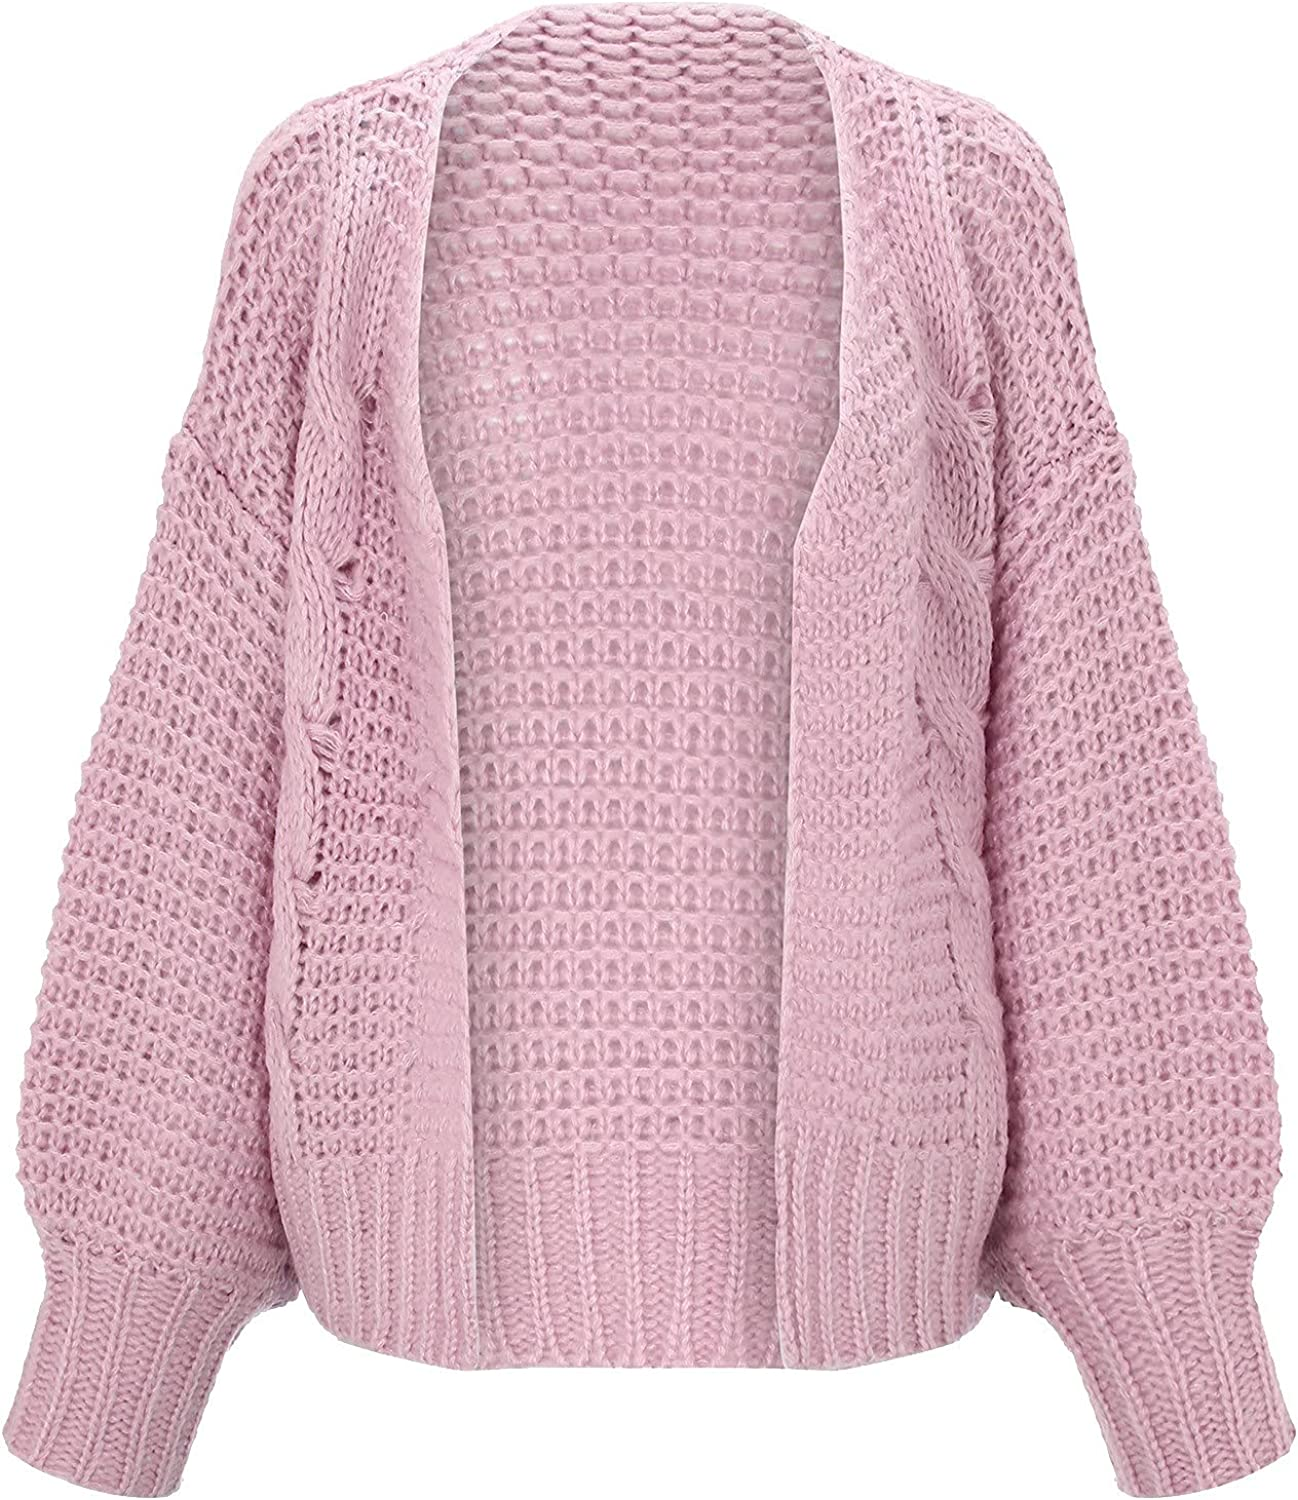 Misaky Ladies Knitted Slouchy Oversized Fashion Mohair Cardigan Sweater Casual Cardigan Warm Jacket